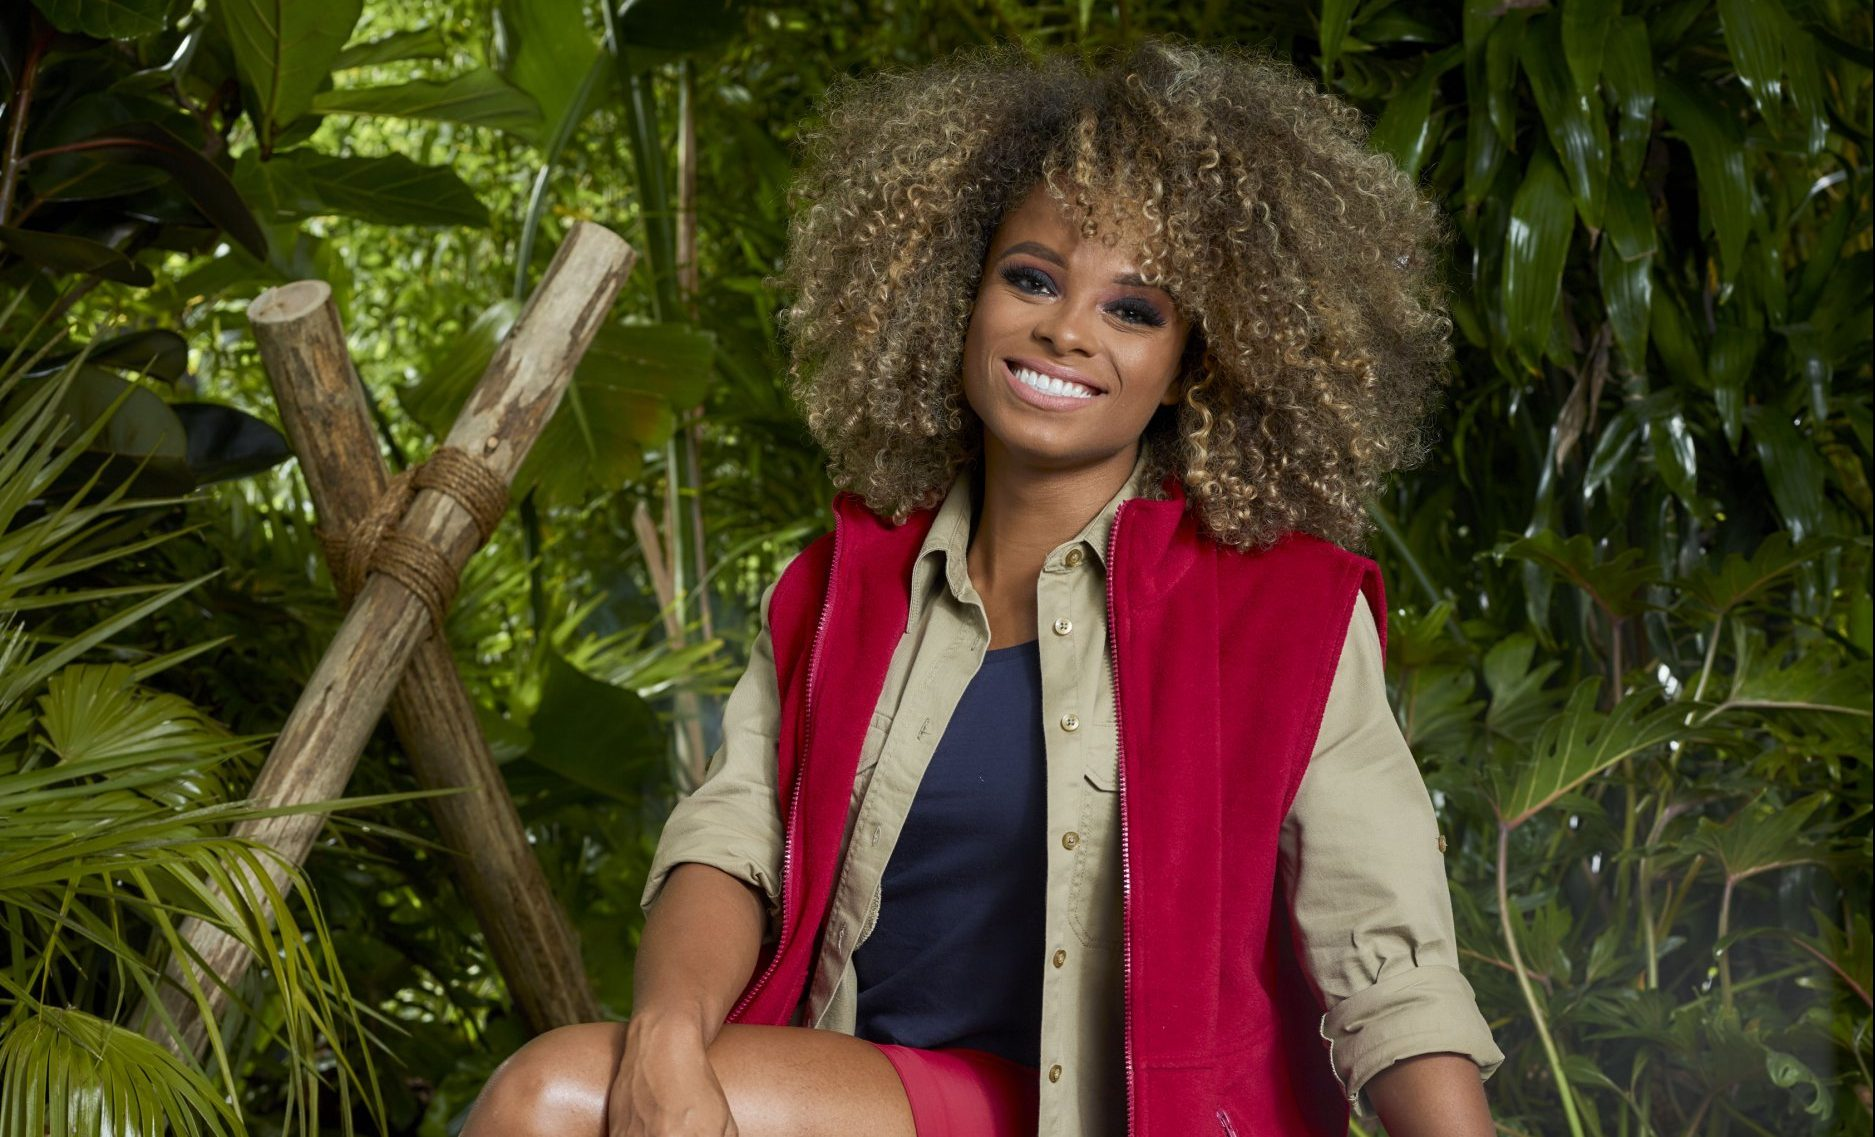 Vegan I'm A Celebrity camp mates are not exempt from eating challenges